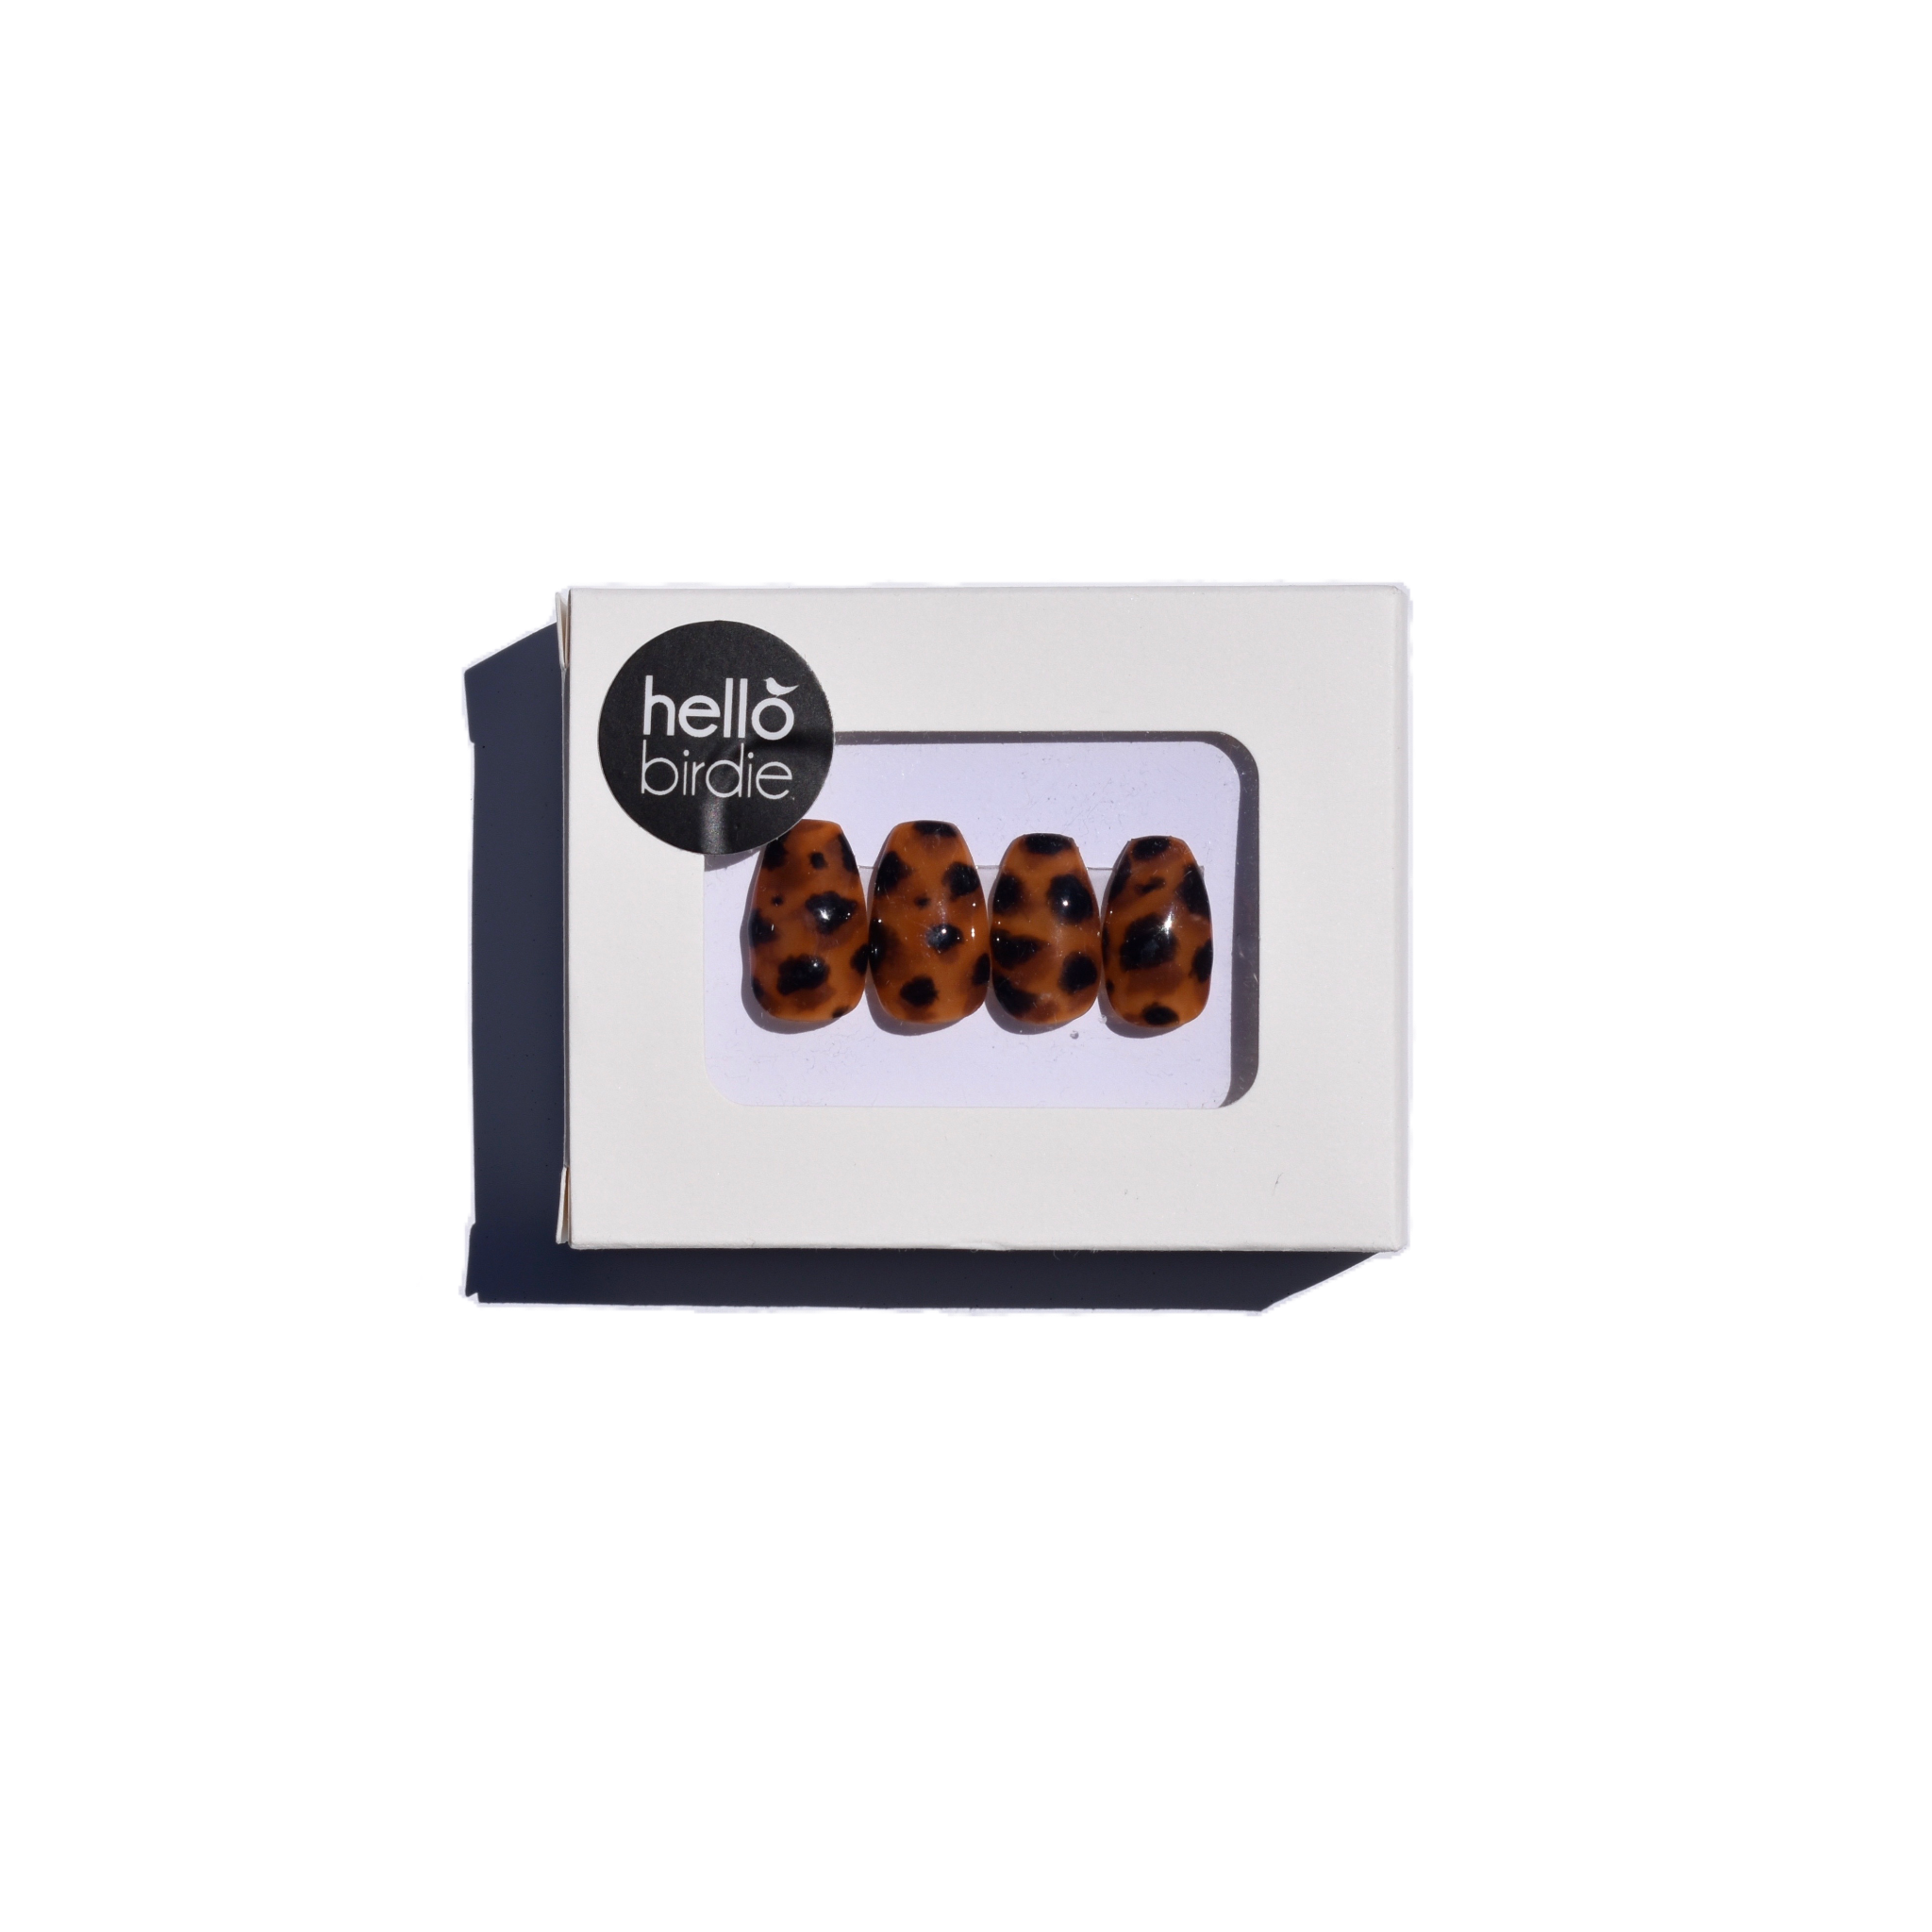 Four press-ons packaged in a rectangular box with a Hello Birdie logo on the top left corner.  A window with rounded corners allows you to view the tortoise shell coffin shaped nails.